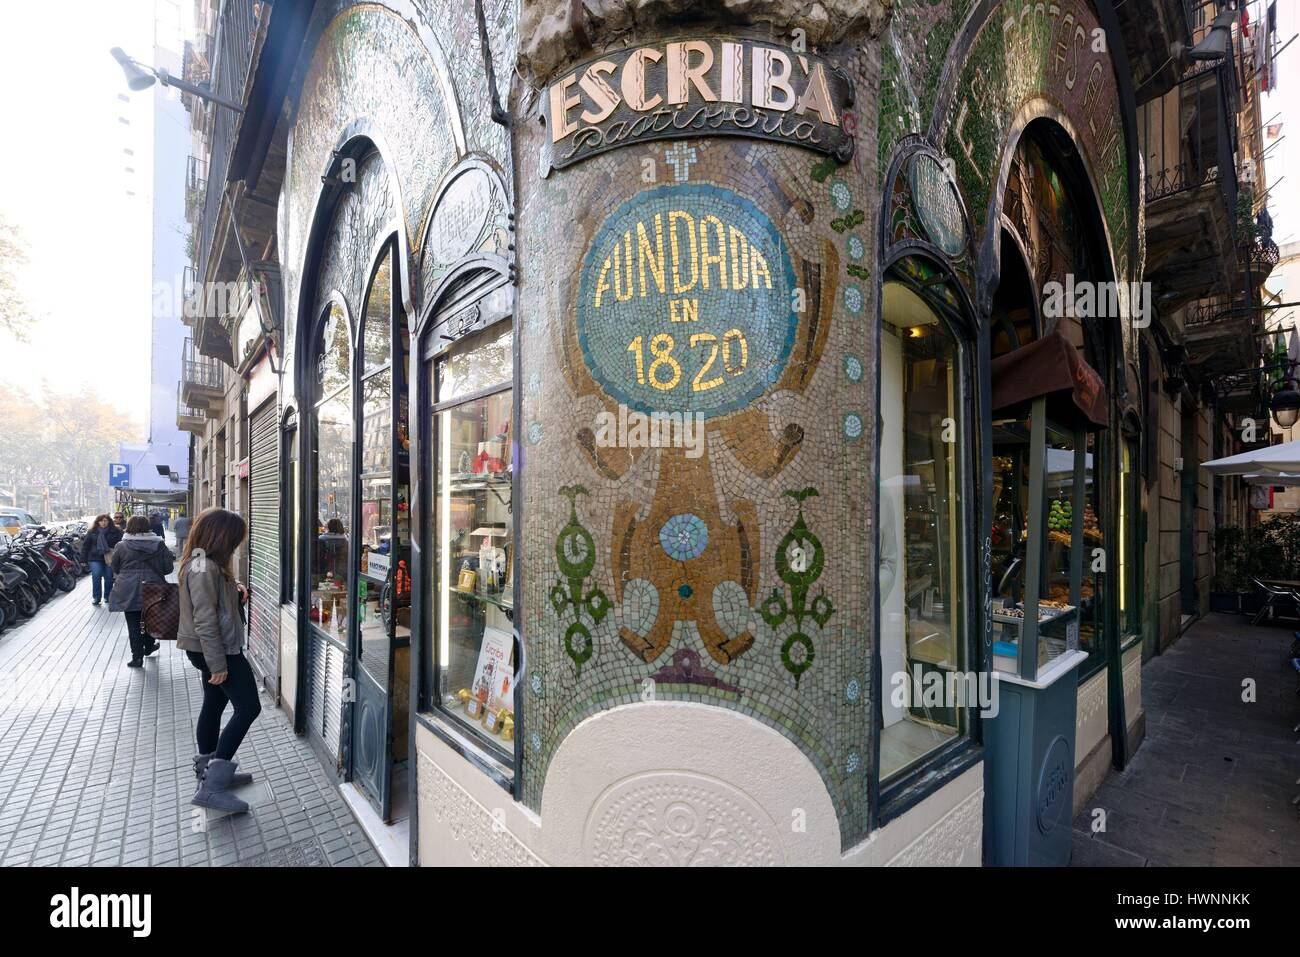 Spain, Catalonia, Barcelona, La Rambla, Escriba cake shop and chocolate maker, The Antiga Casa Figueras, Art Nouveau - Stock Image